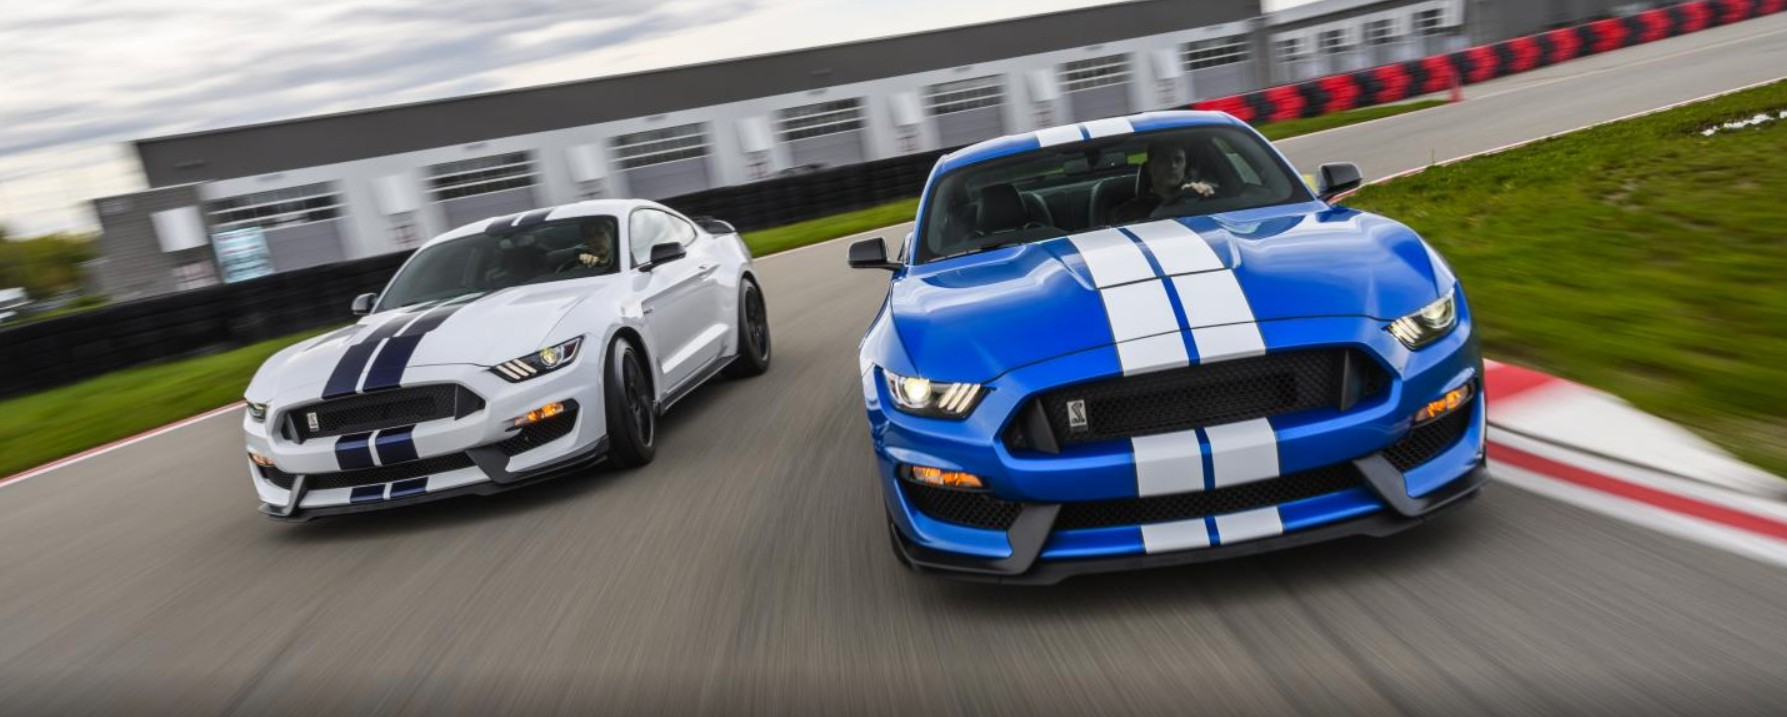 2019-ford-mustang-shelby-gt350-driven-fordnxt.jpg